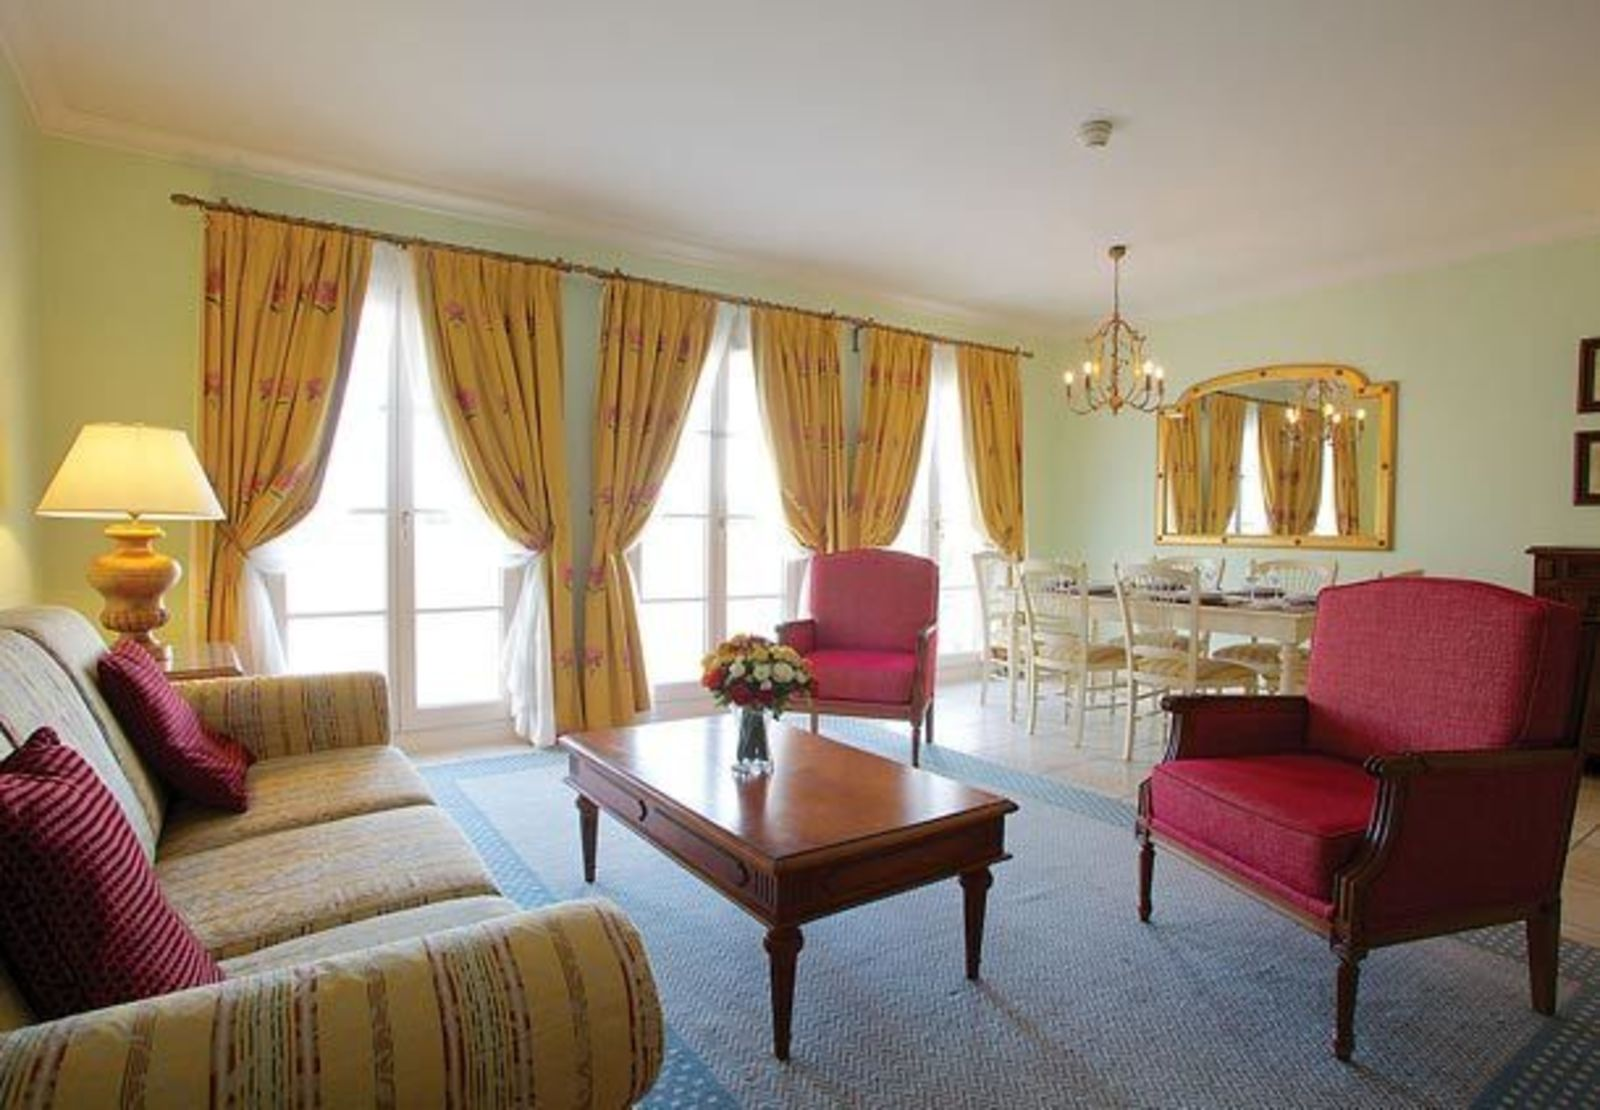 Marriott's Village d'ile-de-France (near Disneyland Paris), 3-Bedroom